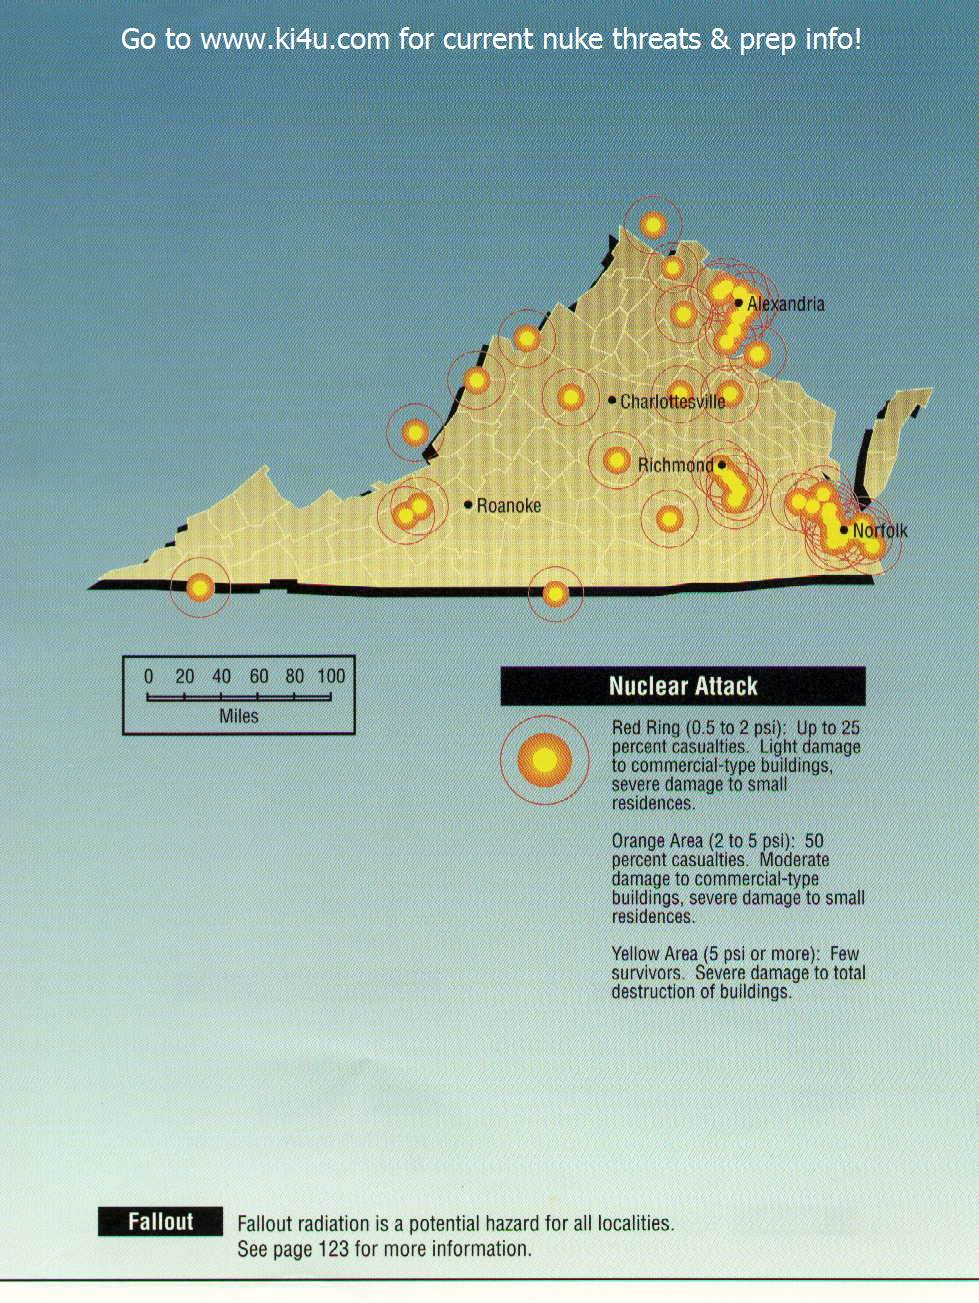 Fema Camps In Oregon Map.Nuclear War Fallout Shelter Survival Info For Virginia With Fema